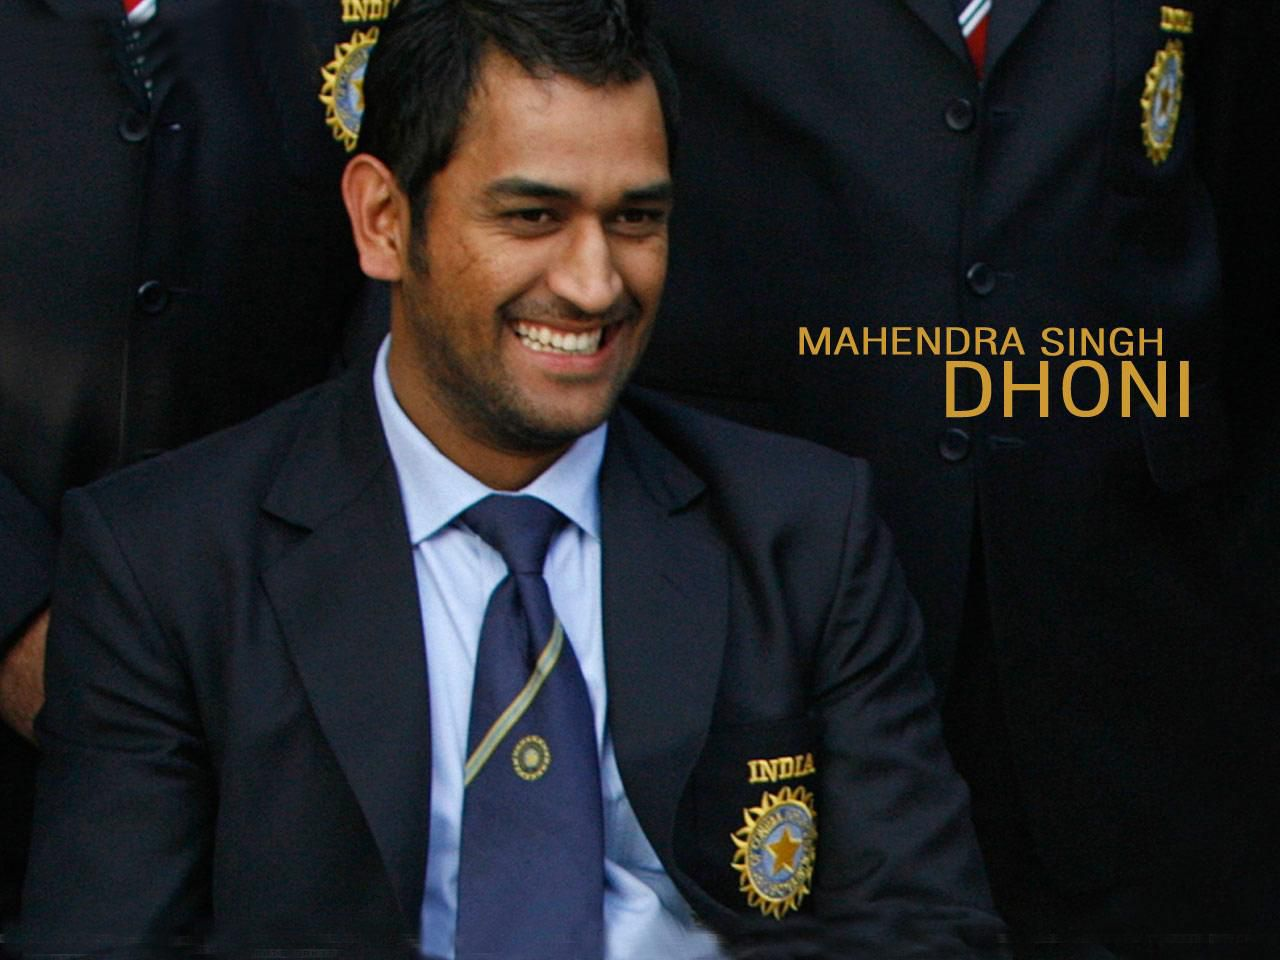 Ms dhoni net worth and earning with cars images a sports news - Free Mahendra Singh Dhoni Jigsaw Puzzle Apk Download For Android